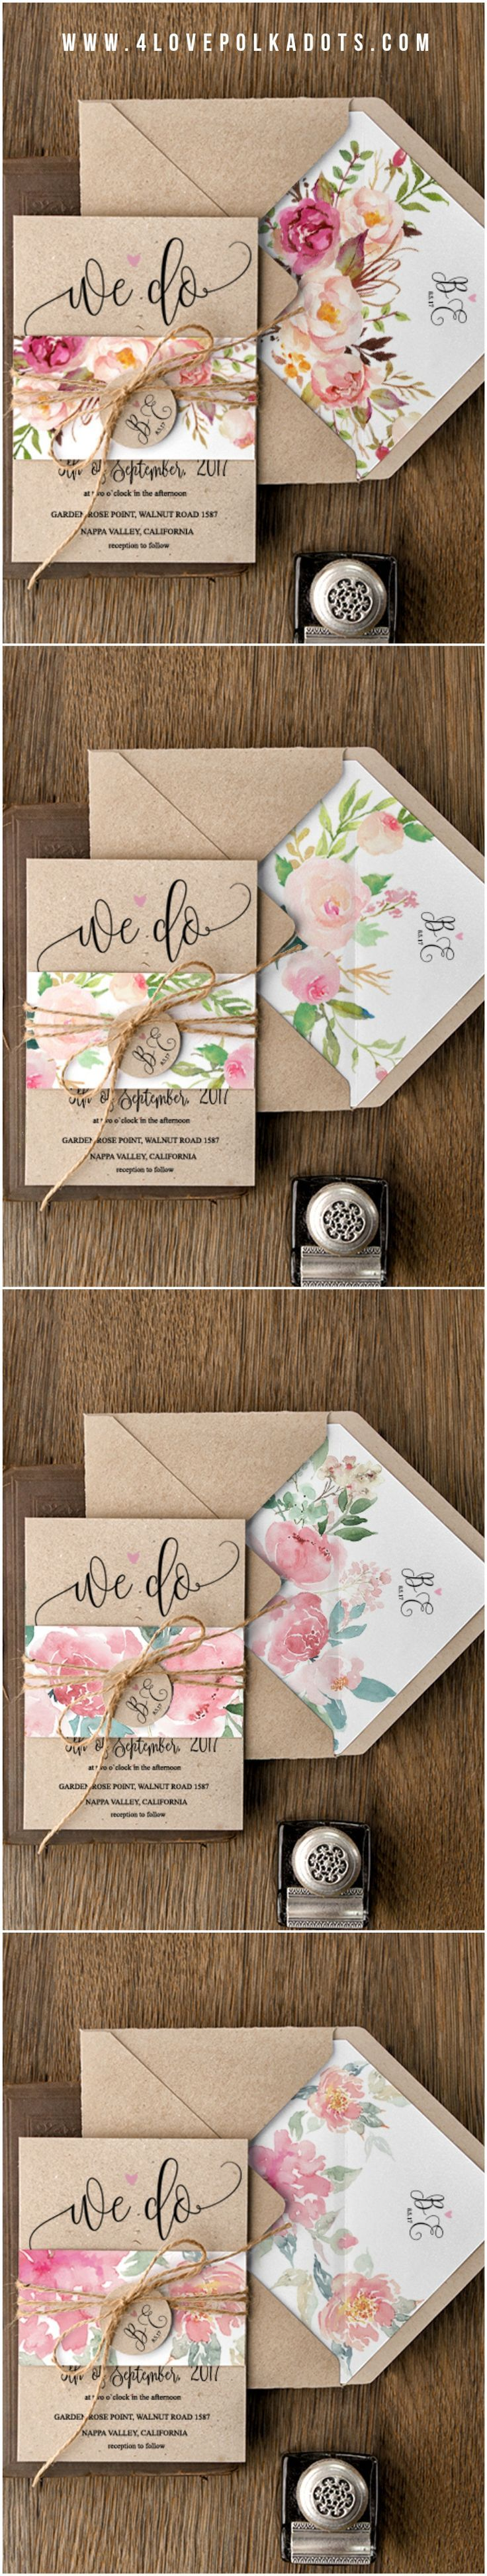 inexpensive wedding invitations cheap wedding invitation Most inexpensive invites I ve found Pin for the color